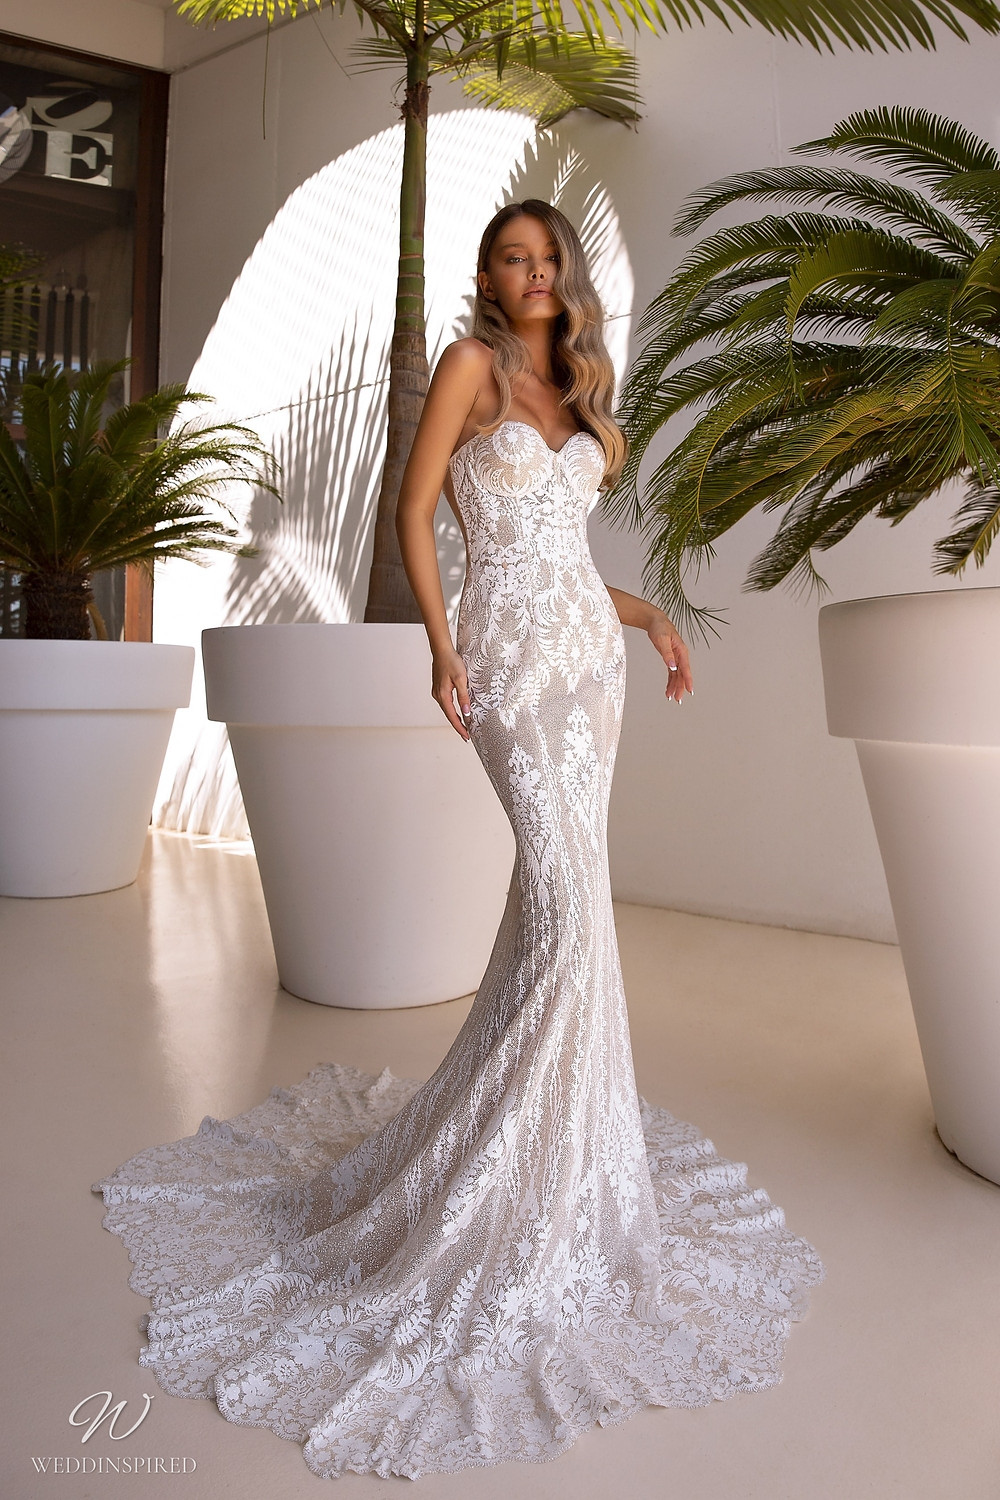 A Tina Valerdi strapless lace mermaid wedding dress with a sweetheart neckline